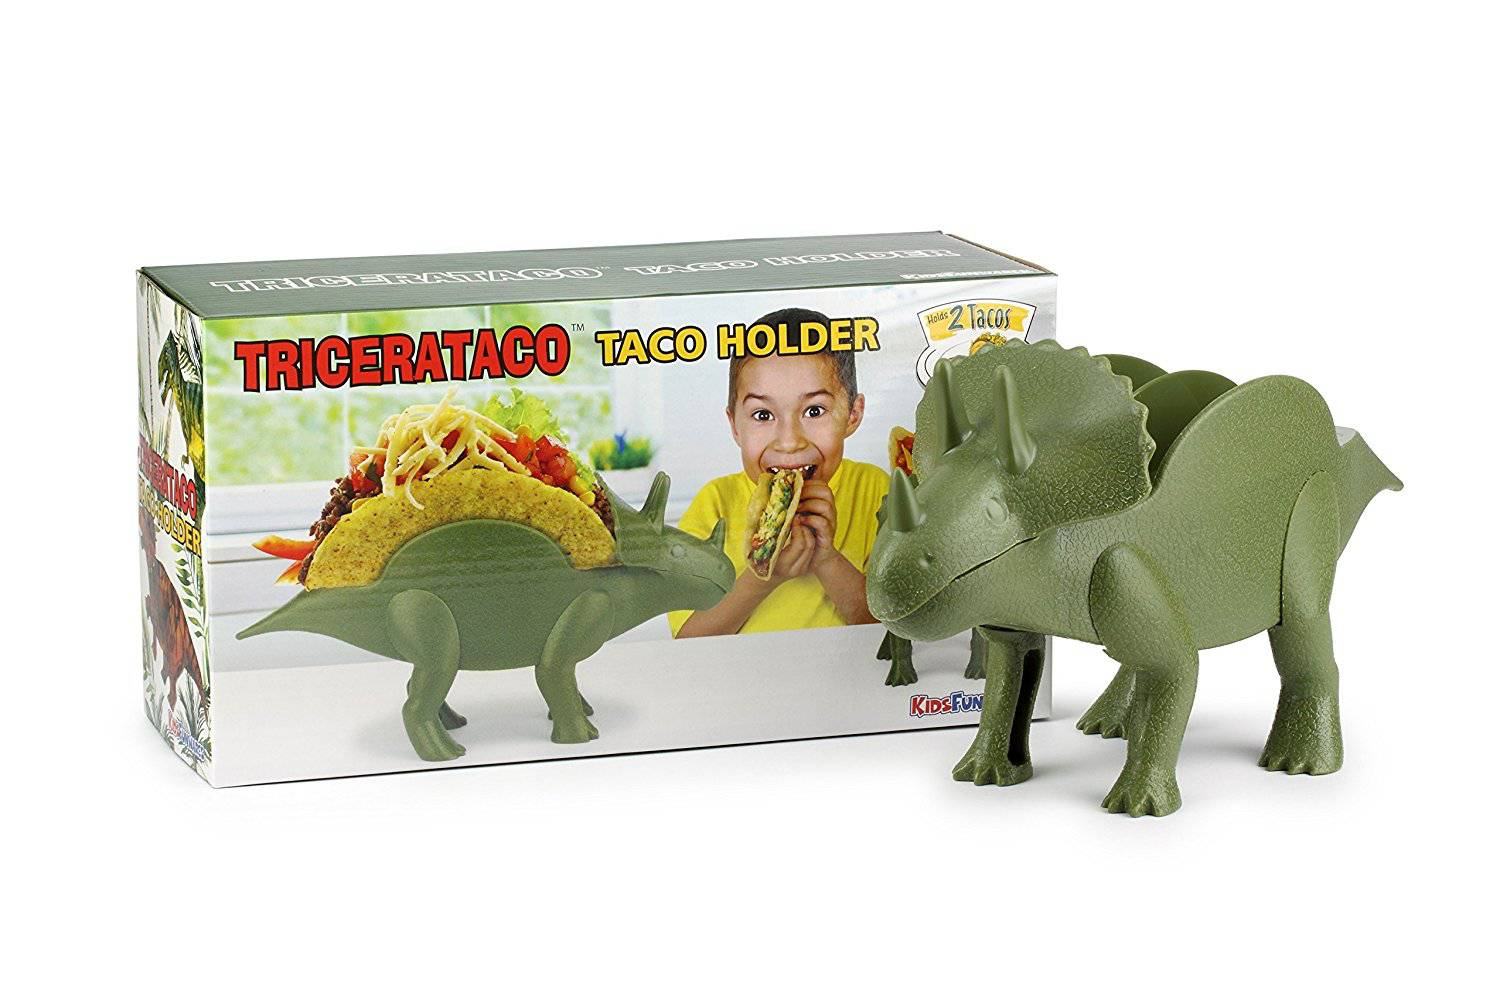 TriceraTaco Taco Holder Dinosaur Packaging